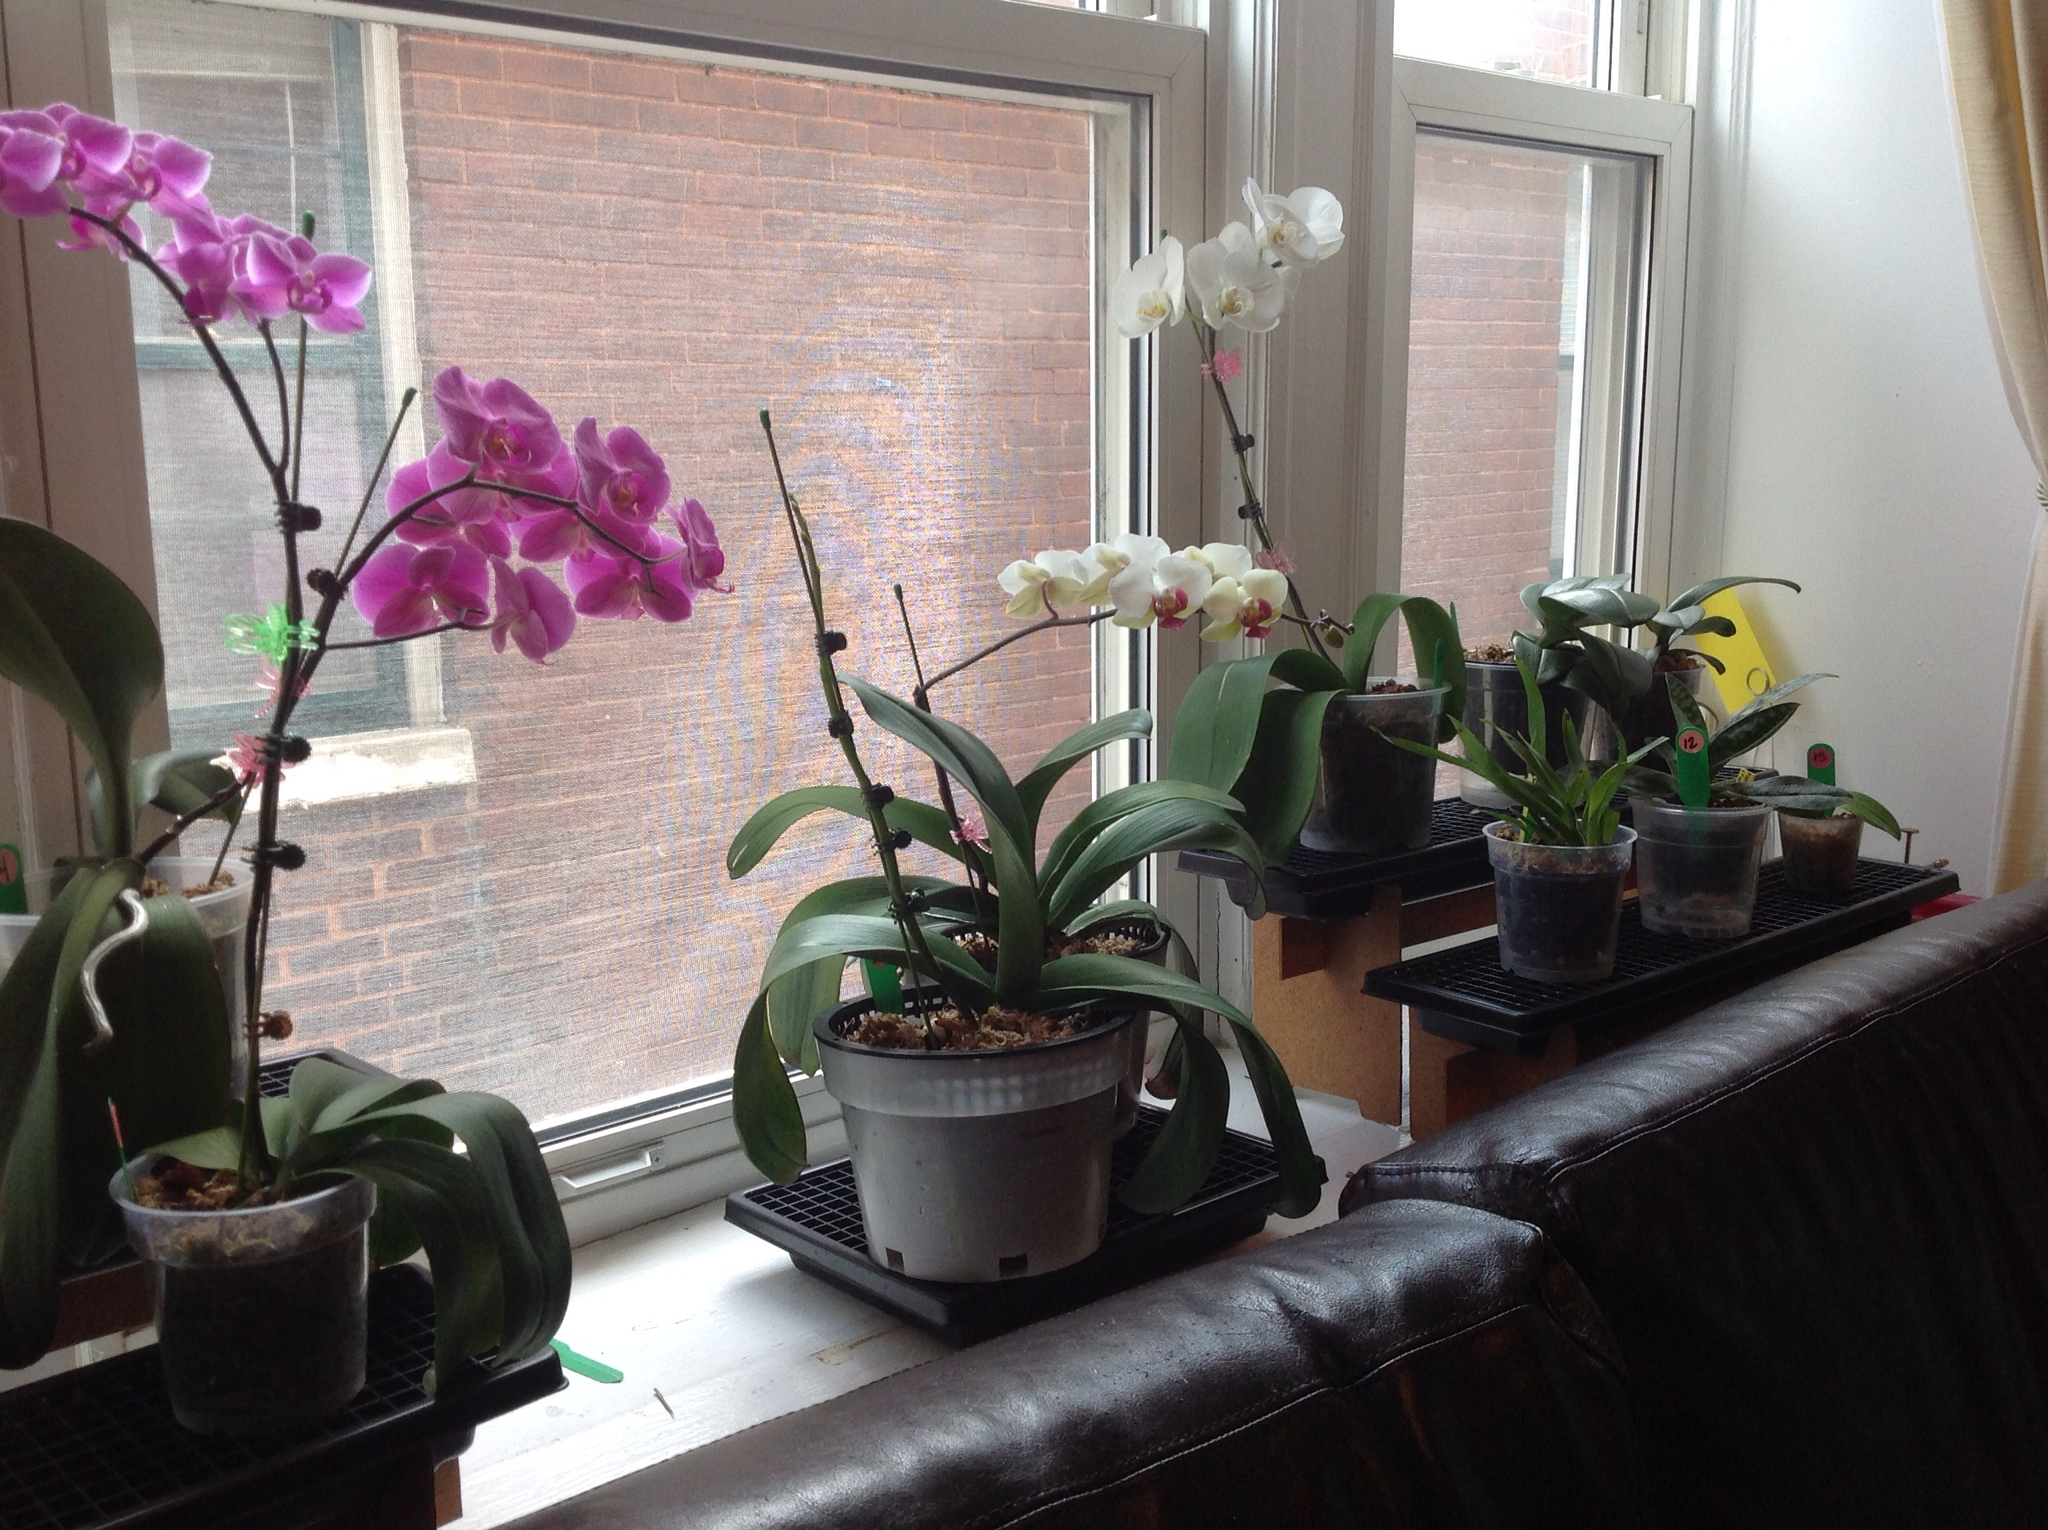 You Must Have Heard About Growing Plants And Flowers Under Fluorescent Light